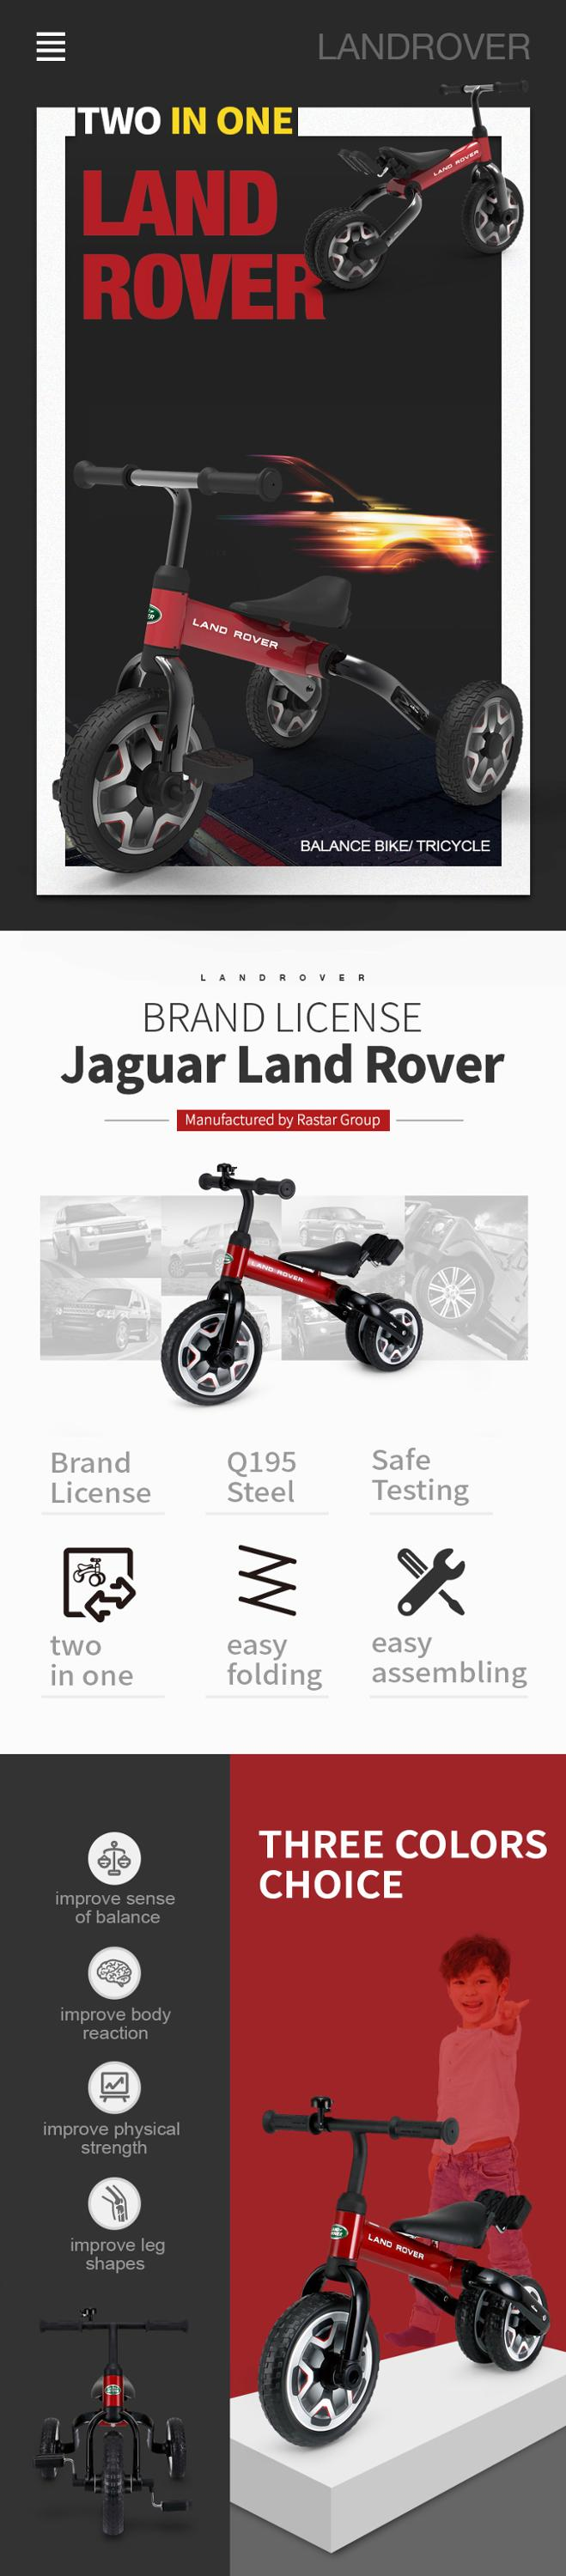 RASTAR kid 2 in 1 trike Land Rover folding baby balance bike/tricycle